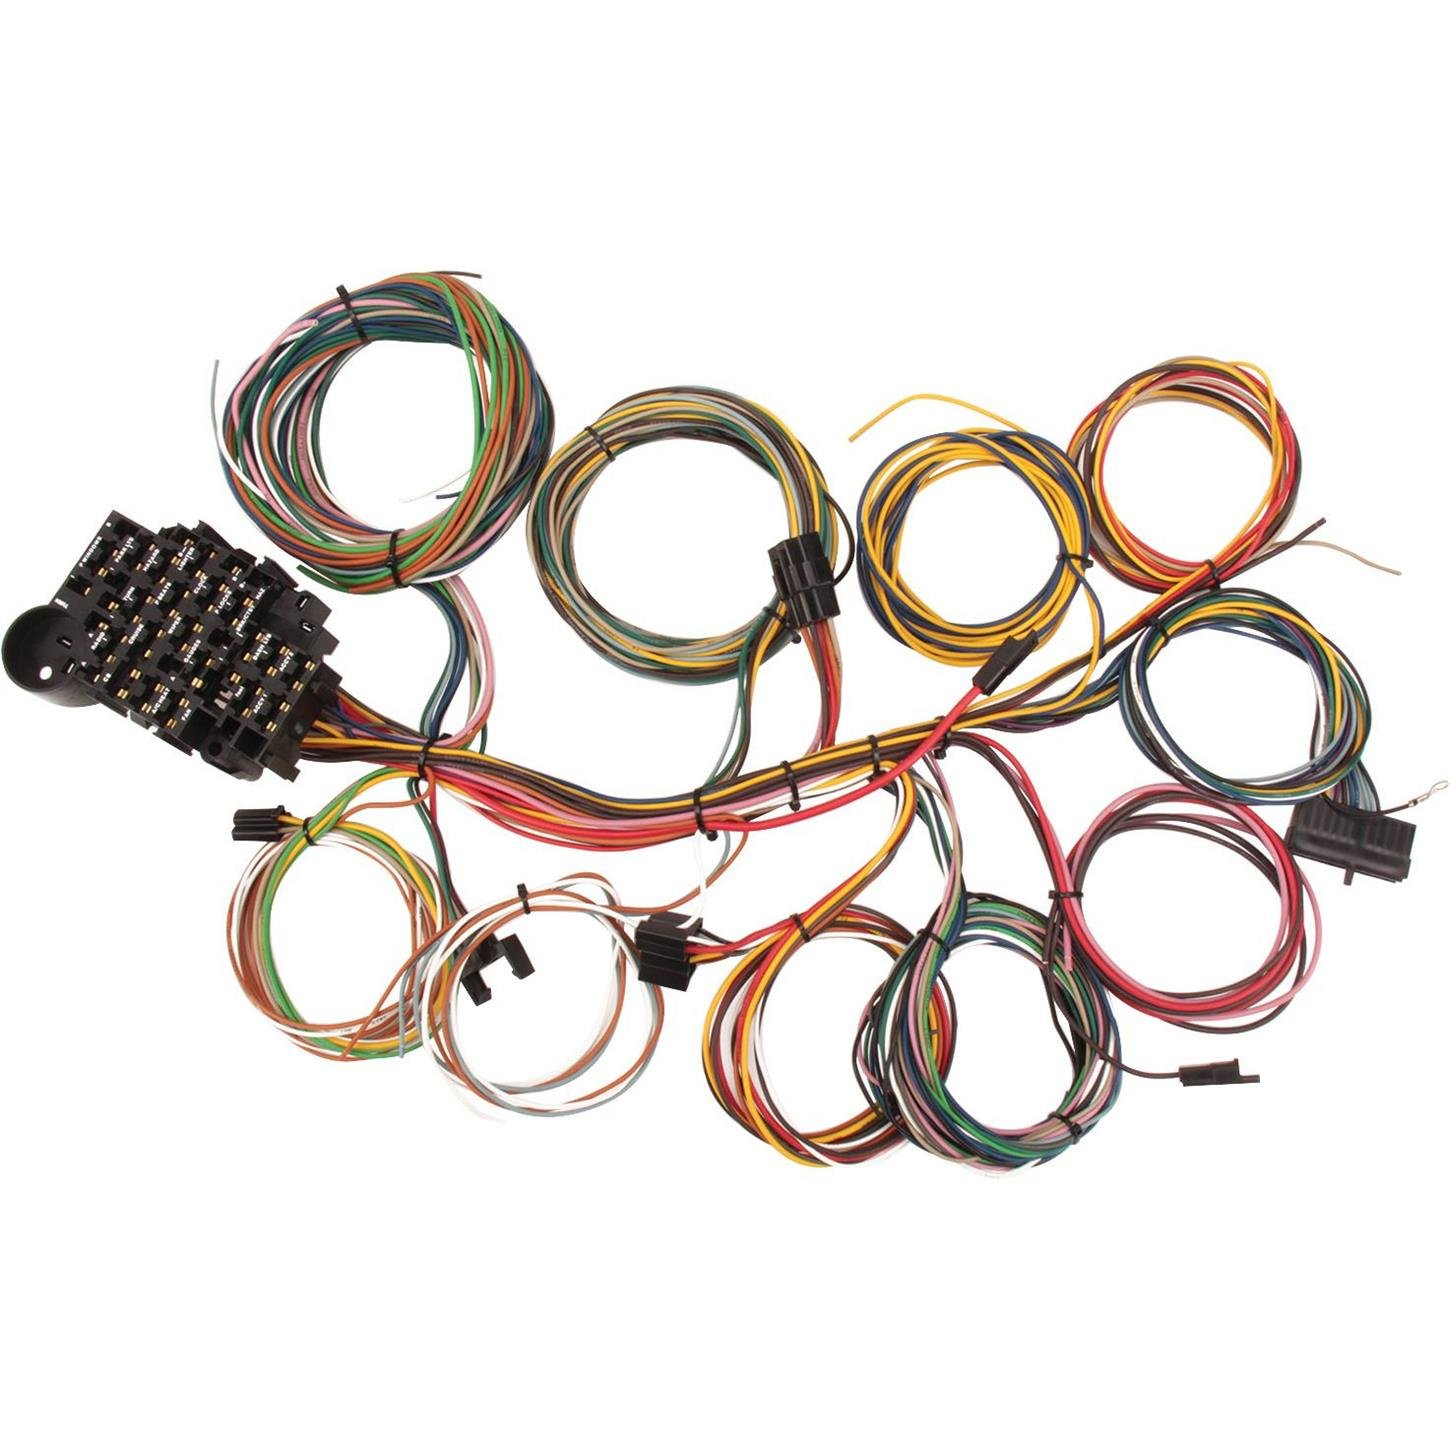 22 Circuit Universal Street Rod Wiring Harness w/Detailed Instructions Speedway Motors